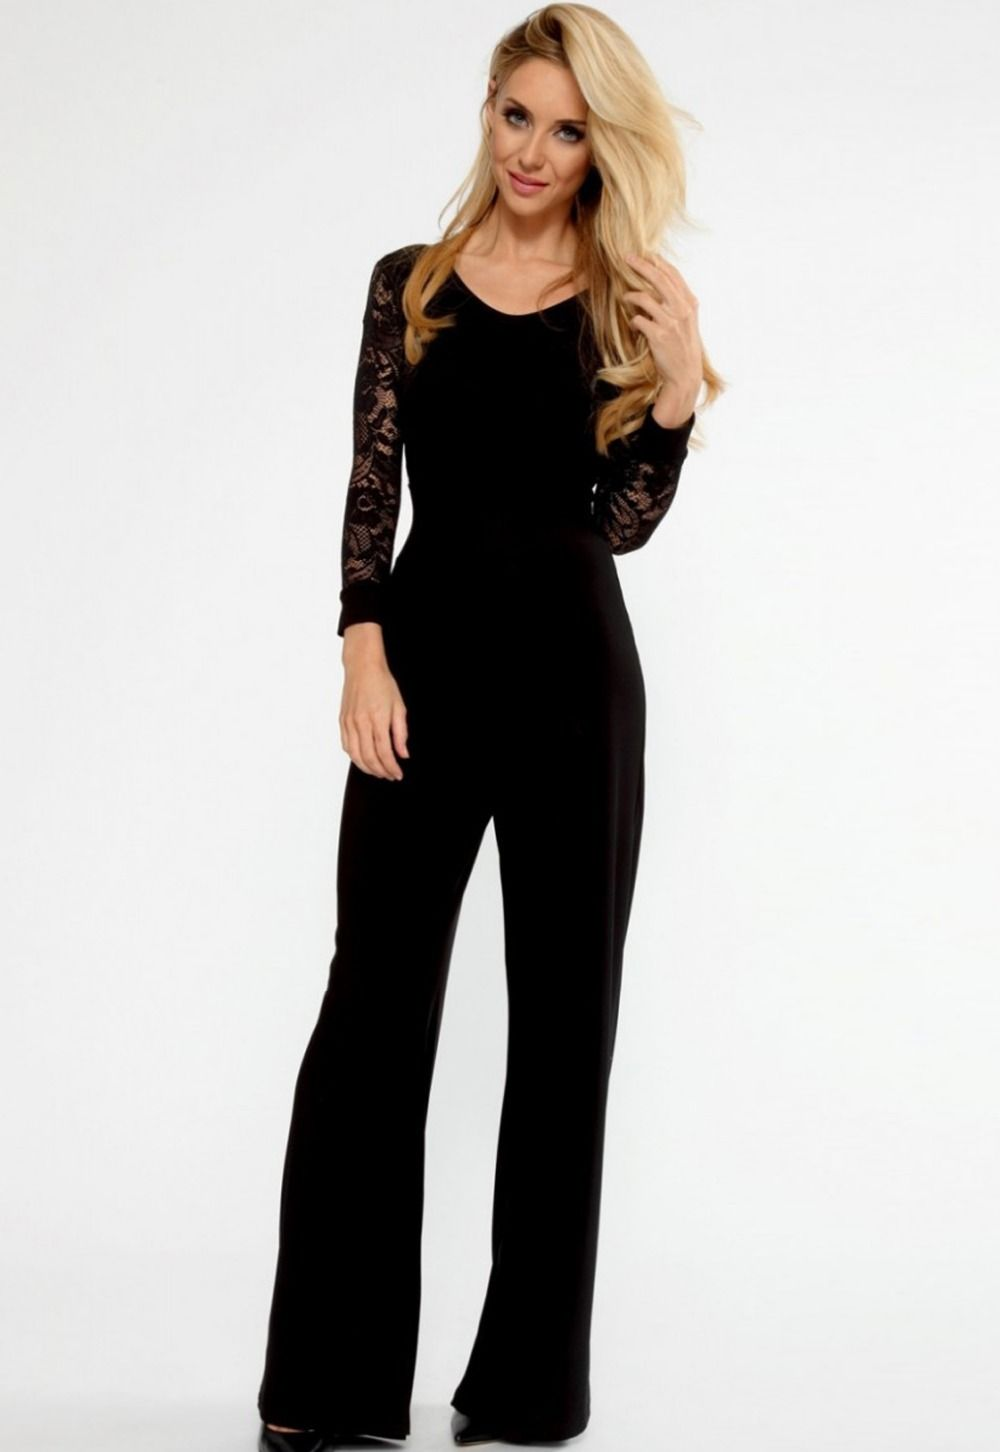 Women Bodysuit Black Flared Pant Lace Sleeve Jumpsuit Overalls for ...